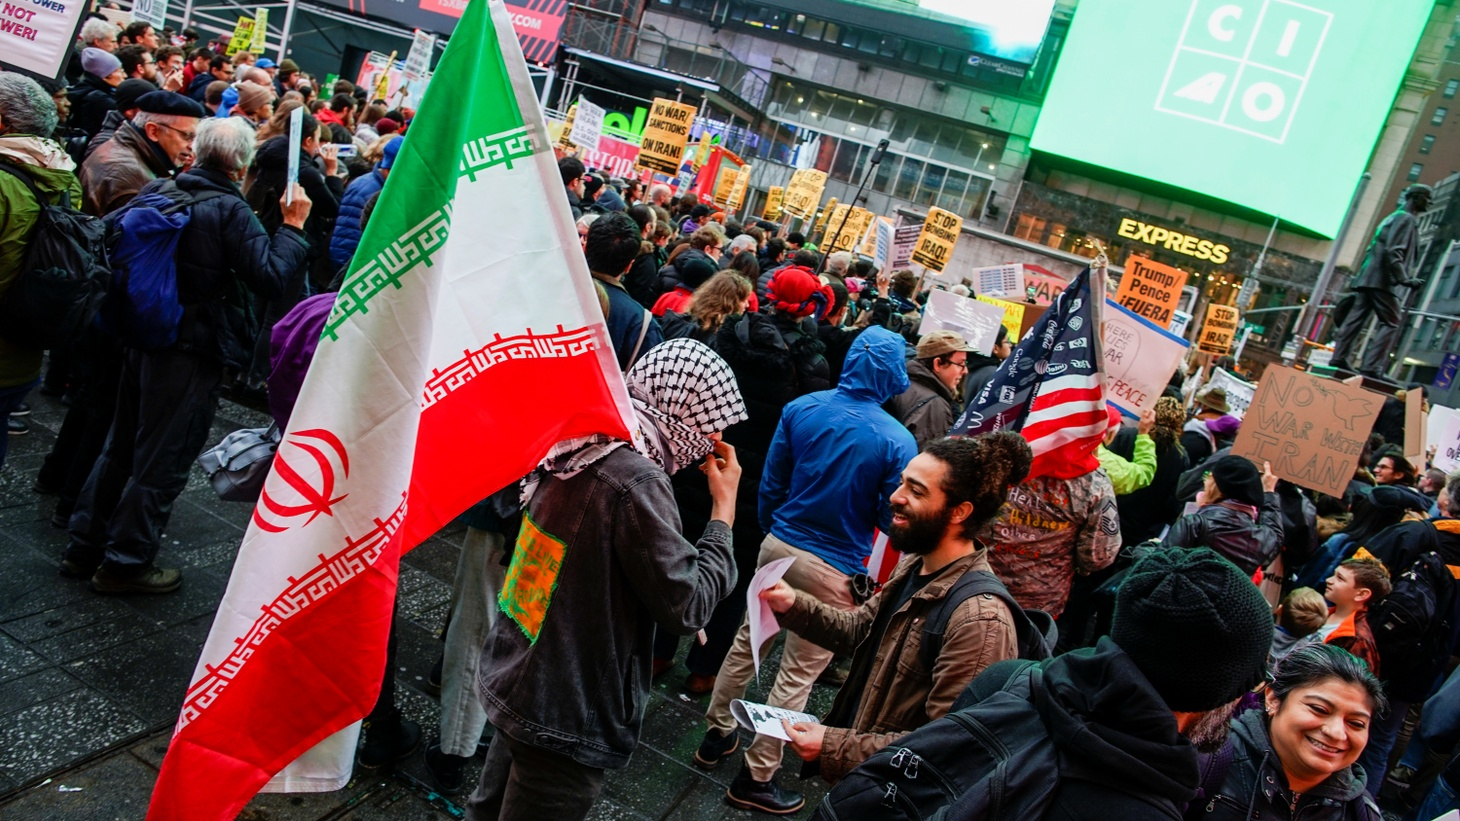 People take part in an anti-war protest amid increased tensions between the United States and Iran at Times Square in New York, U.S., January 4, 2020.